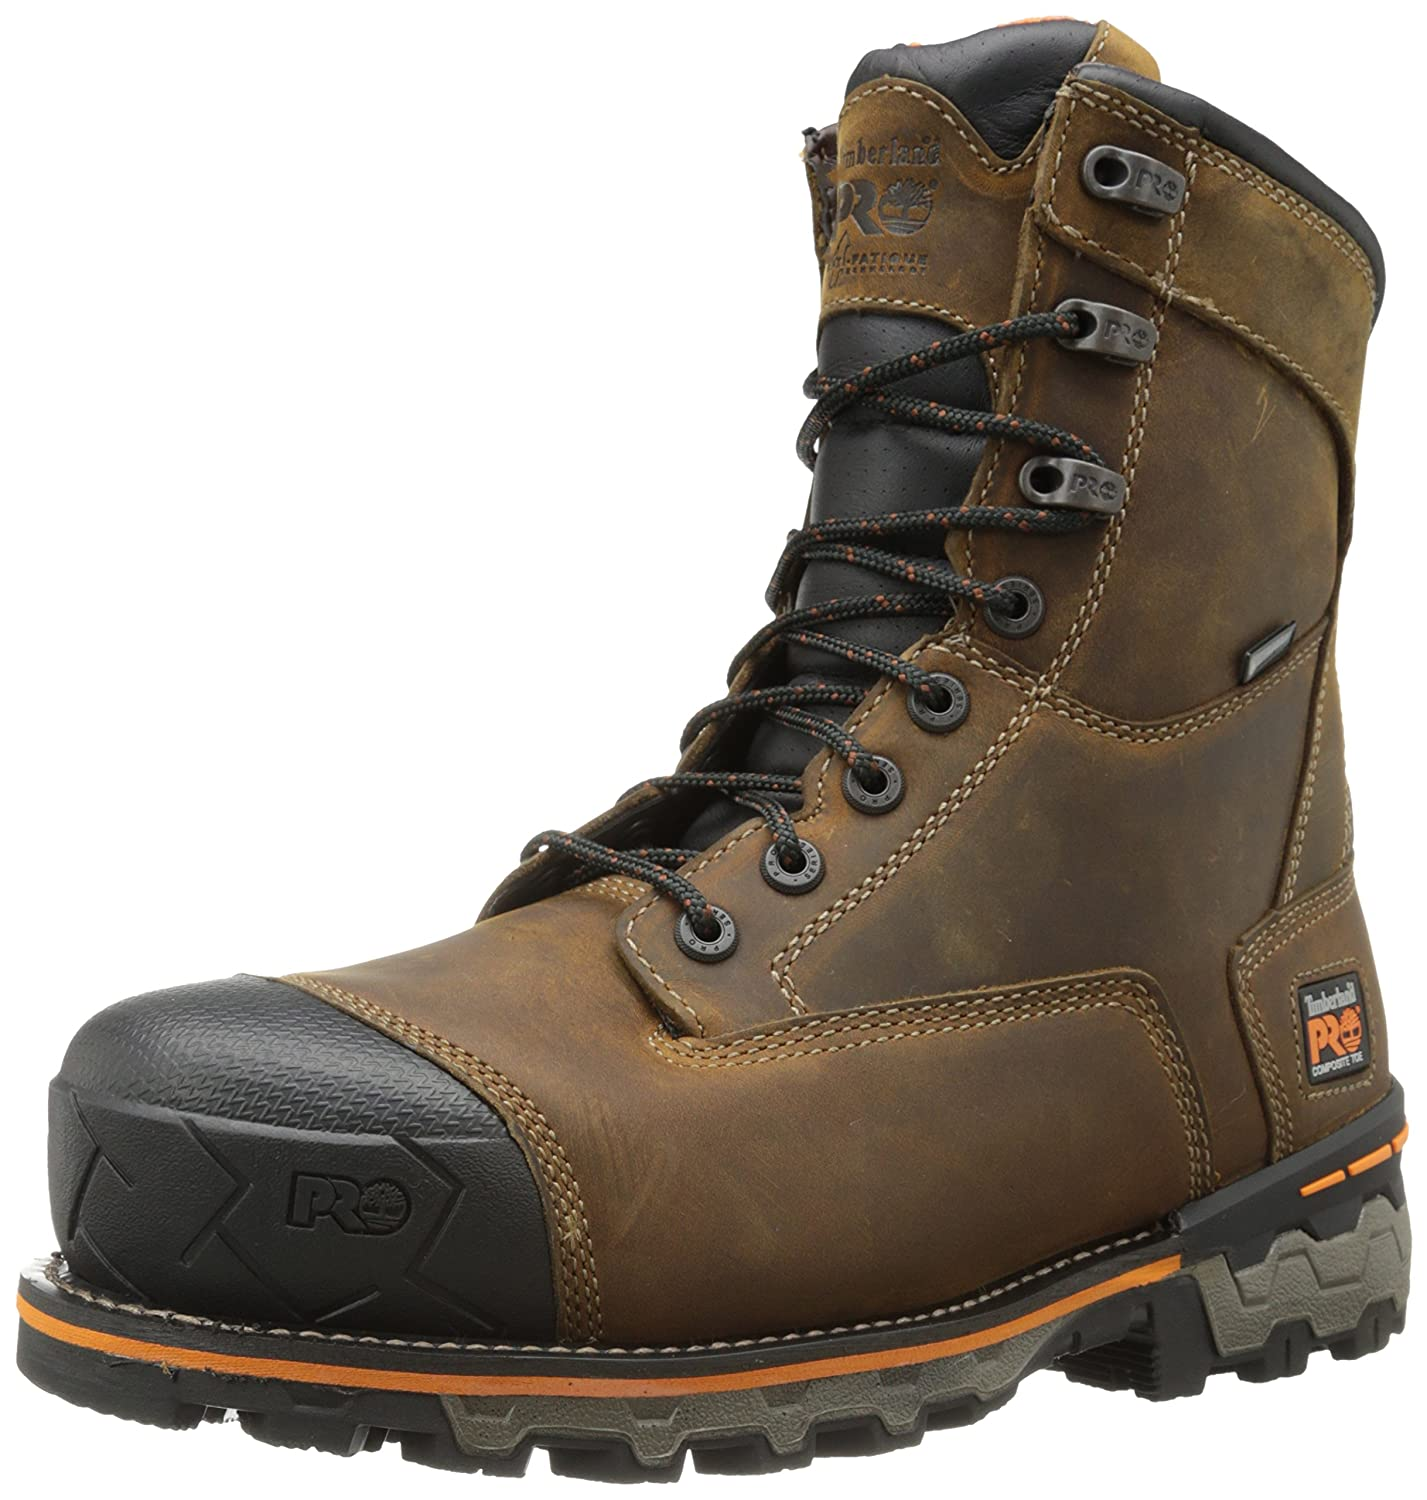 Timberland PRO メンズ B00HNO6QDG 9.5 D(M) US Brown Oiled Distressed Leather Brown Oiled Distressed Leather 9.5 D(M) US